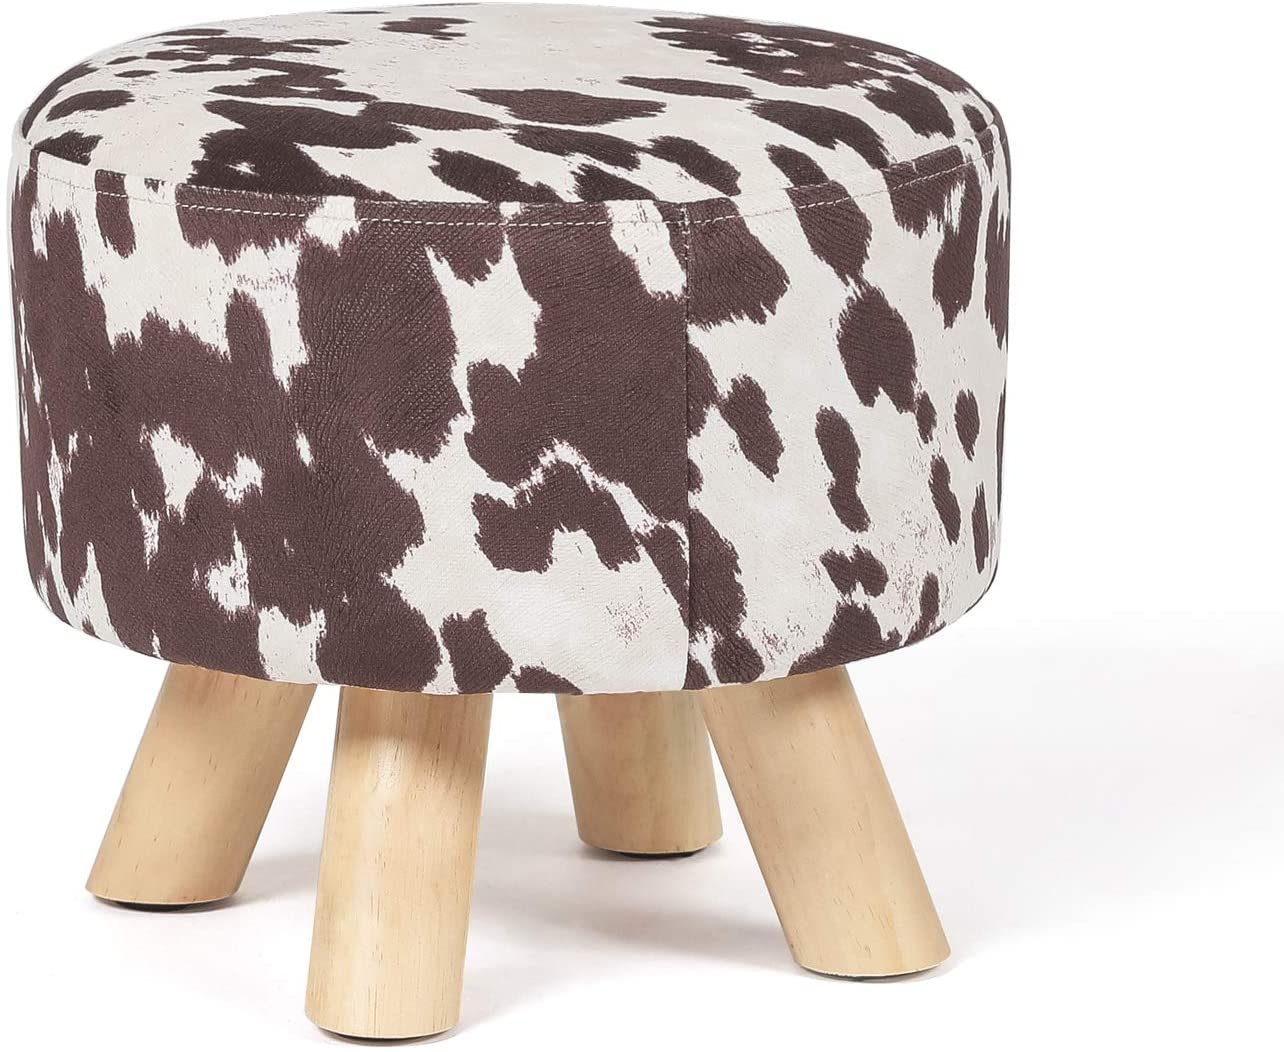 Edeco Modern Round Ottoman Foot Rest Stool Seat Pouf Ottoman With Linen Fabric And Non Skid Wooden Legs Brown Cow Furniture Decor